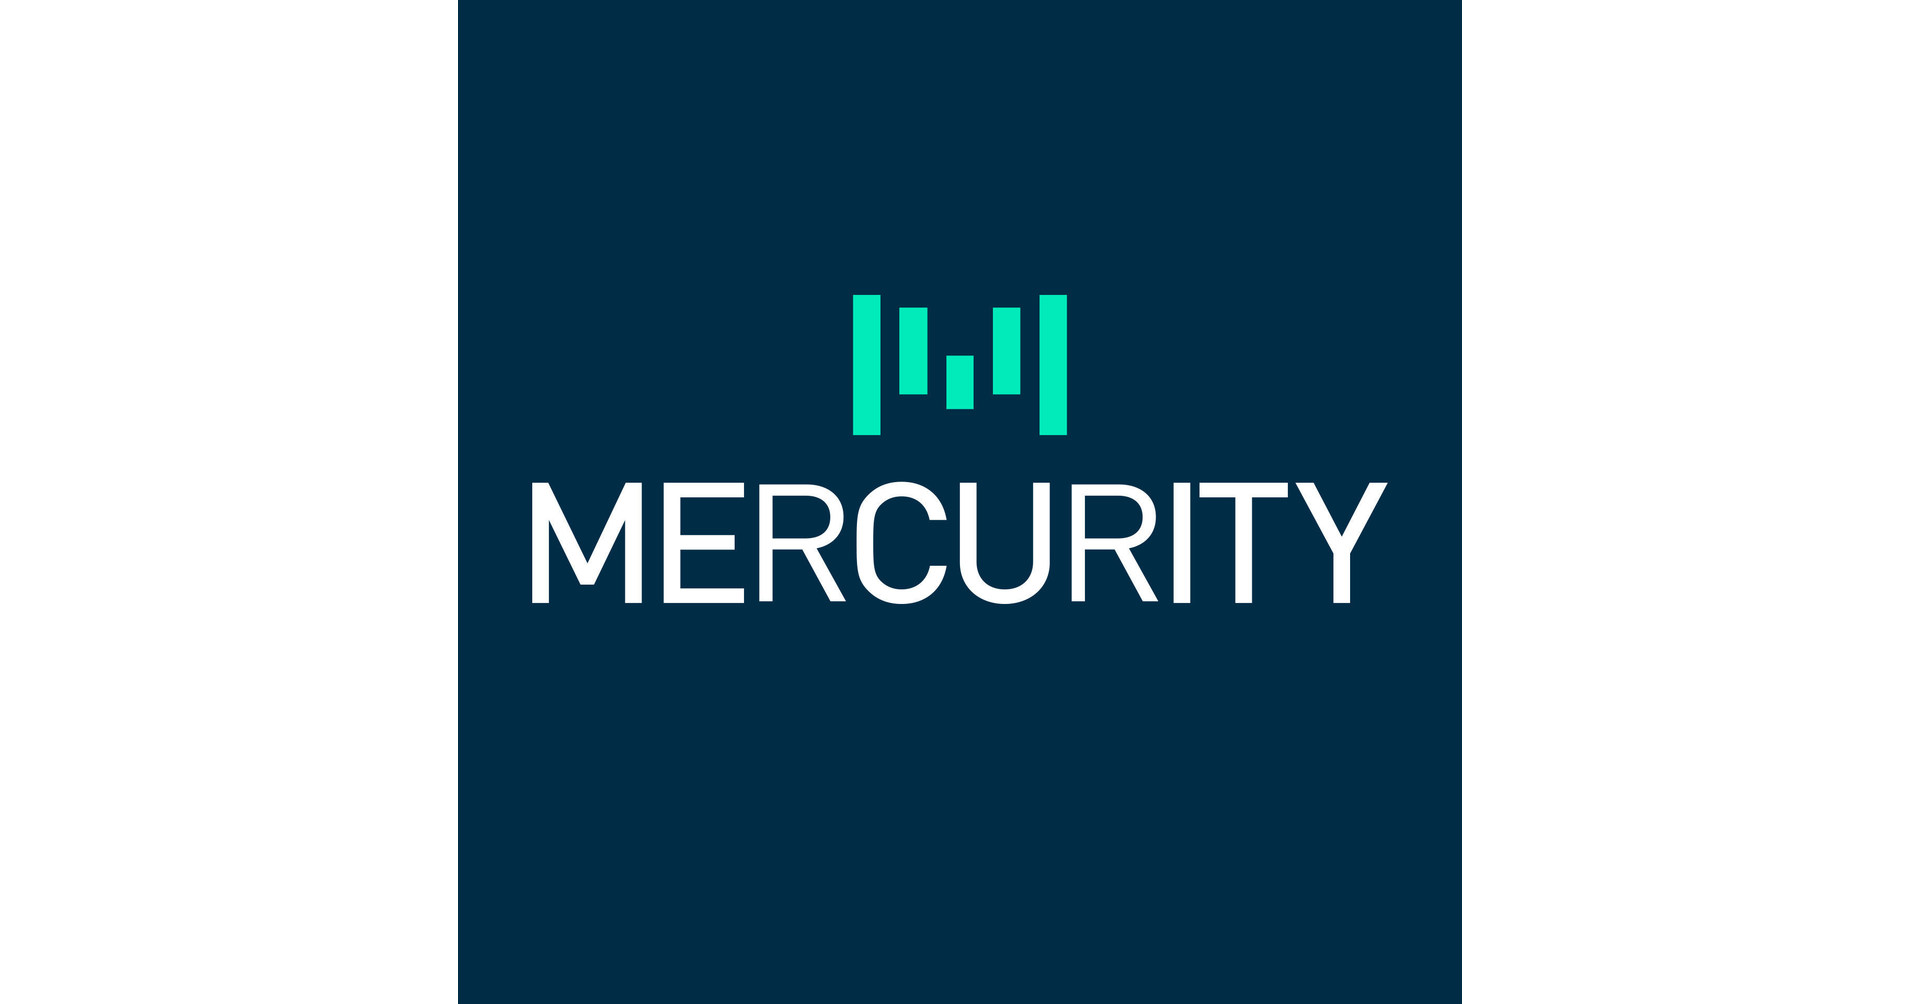 BEIJING, March 4, 2021 /PRNewswire/ -- Mercurity Fintech Holding Inc. (the